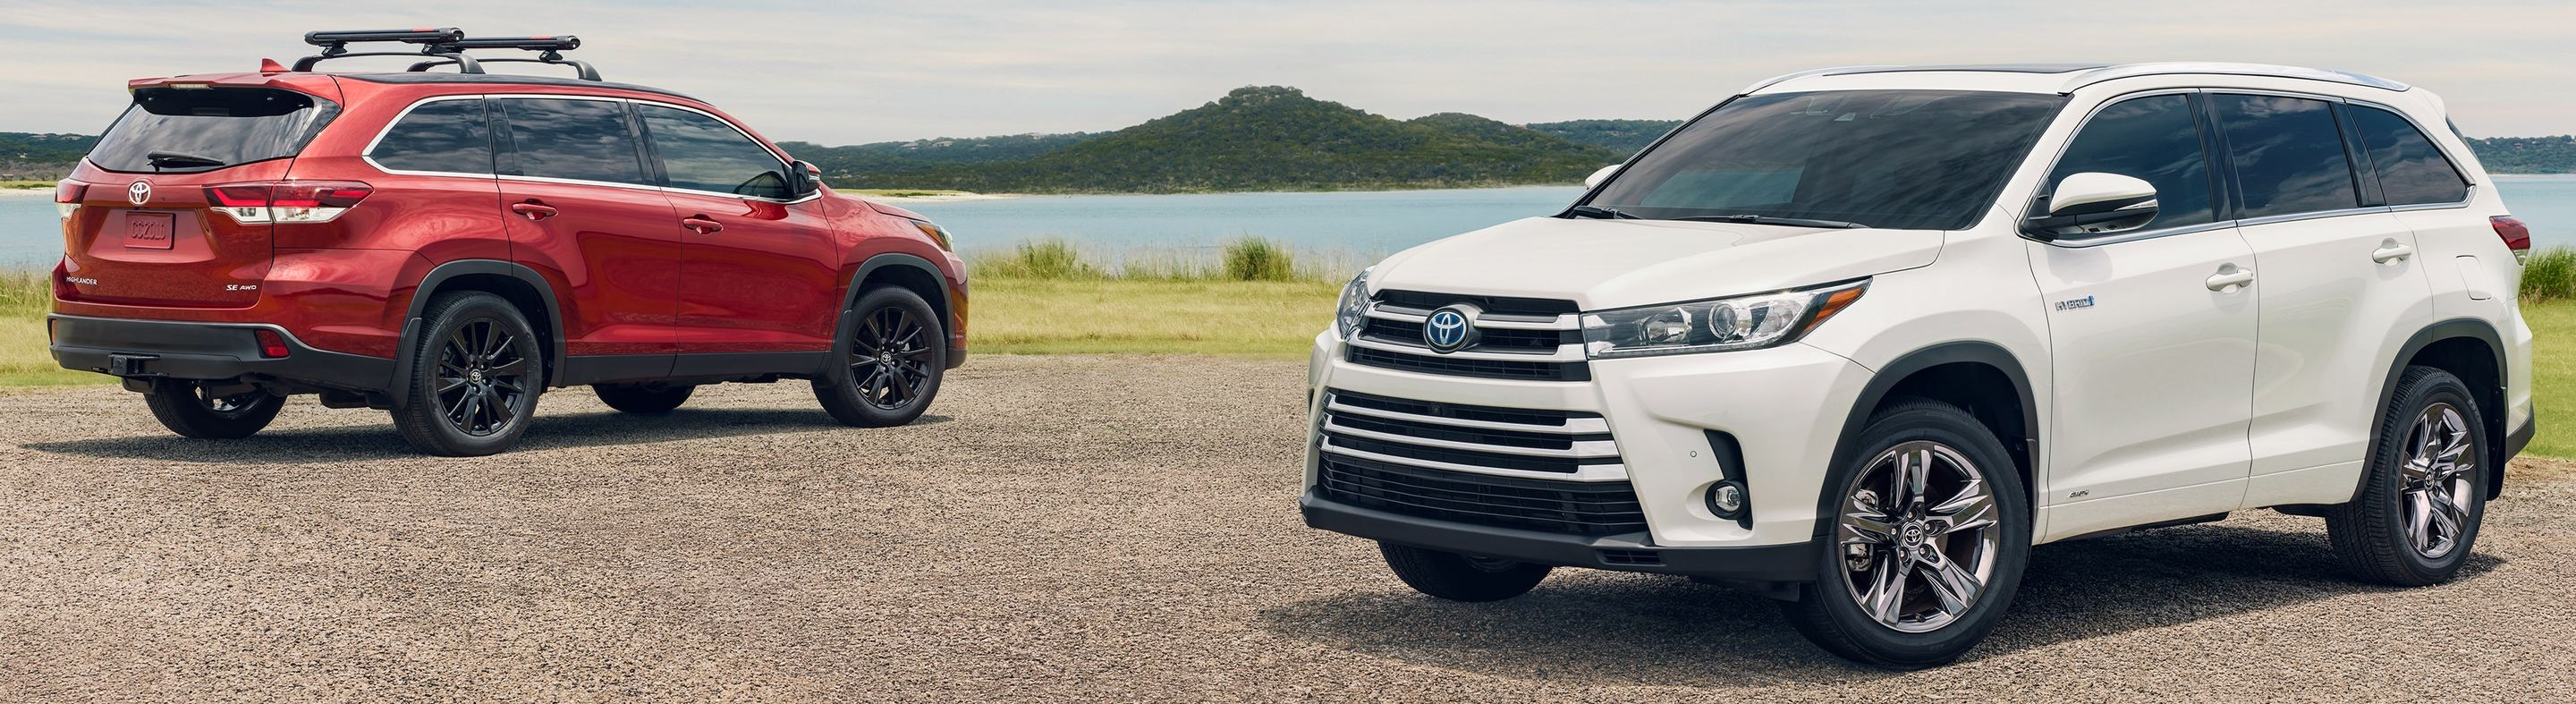 2019 Toyota Highlander for Sale near Perrysburg, OH